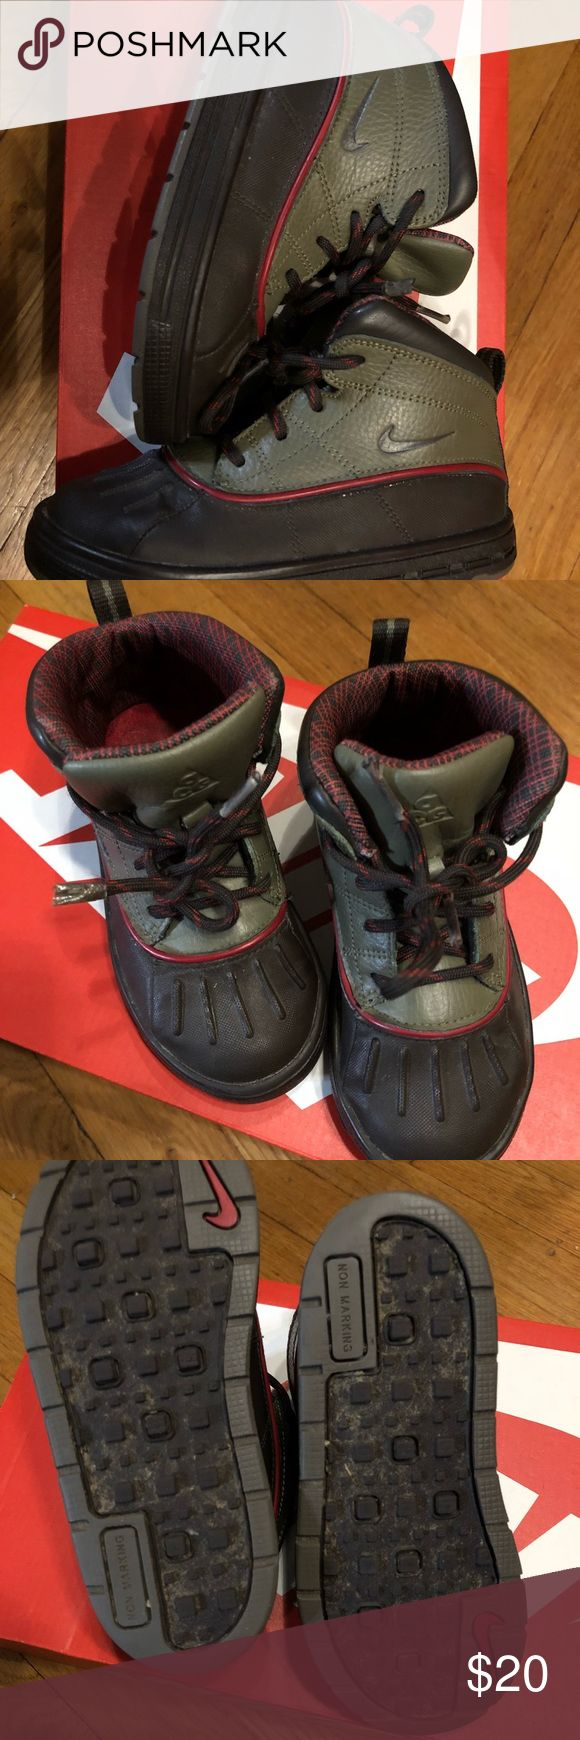 Nike ACG Boots Natural color themed winter boots Nike Shoes Boots